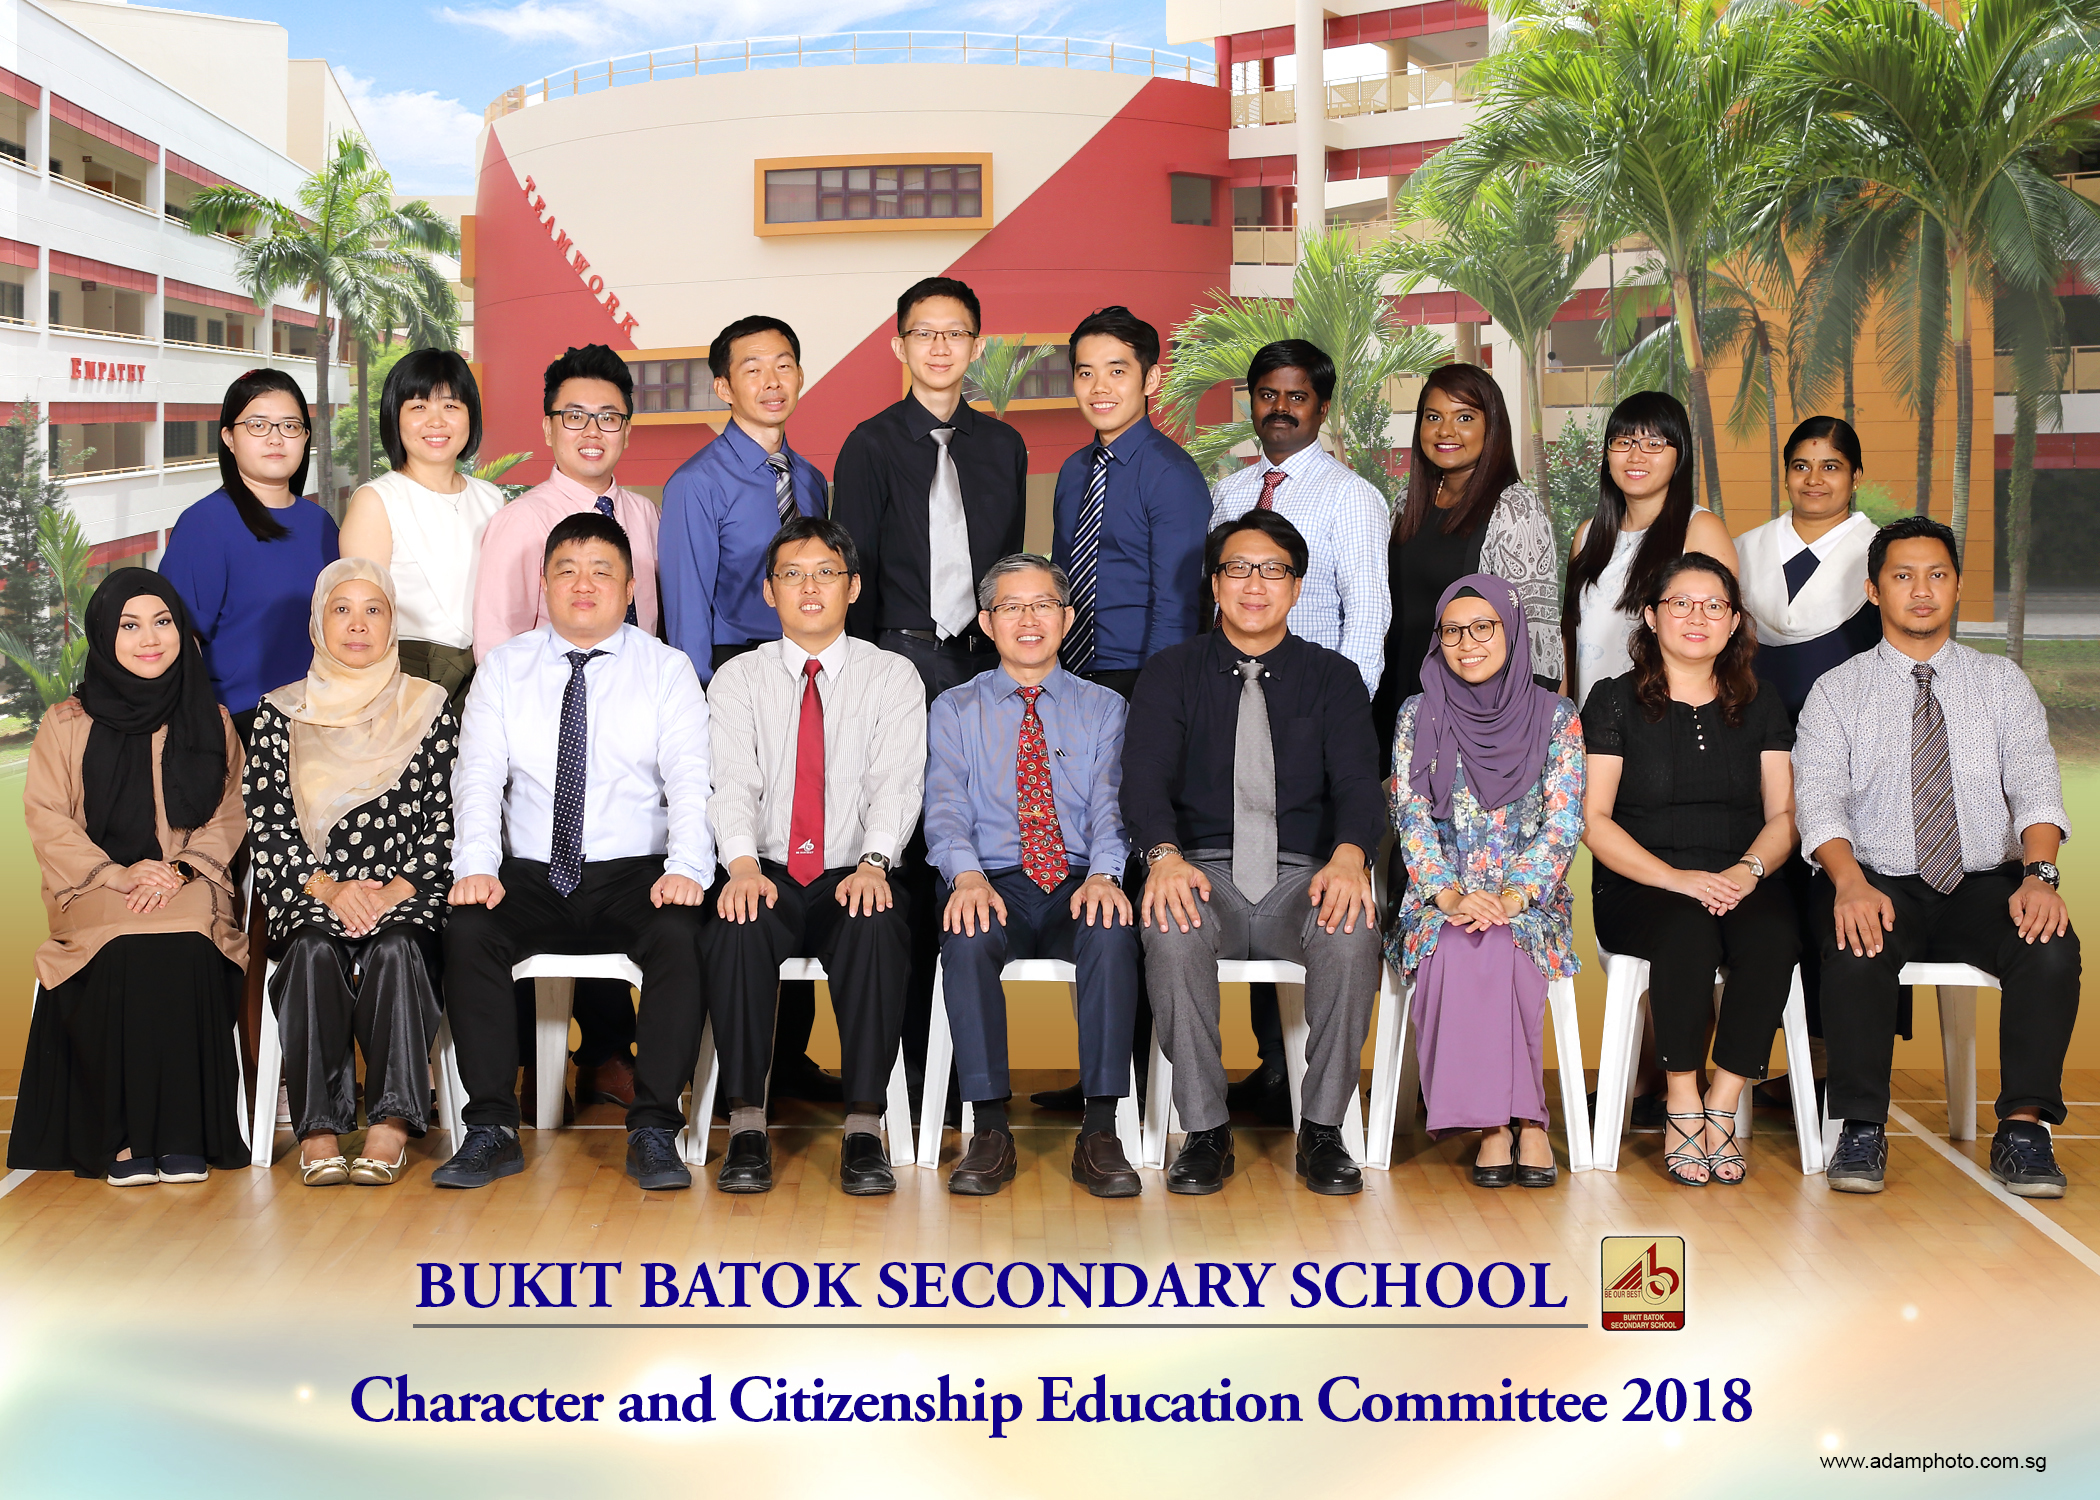 Character and Citizenship Education Committee